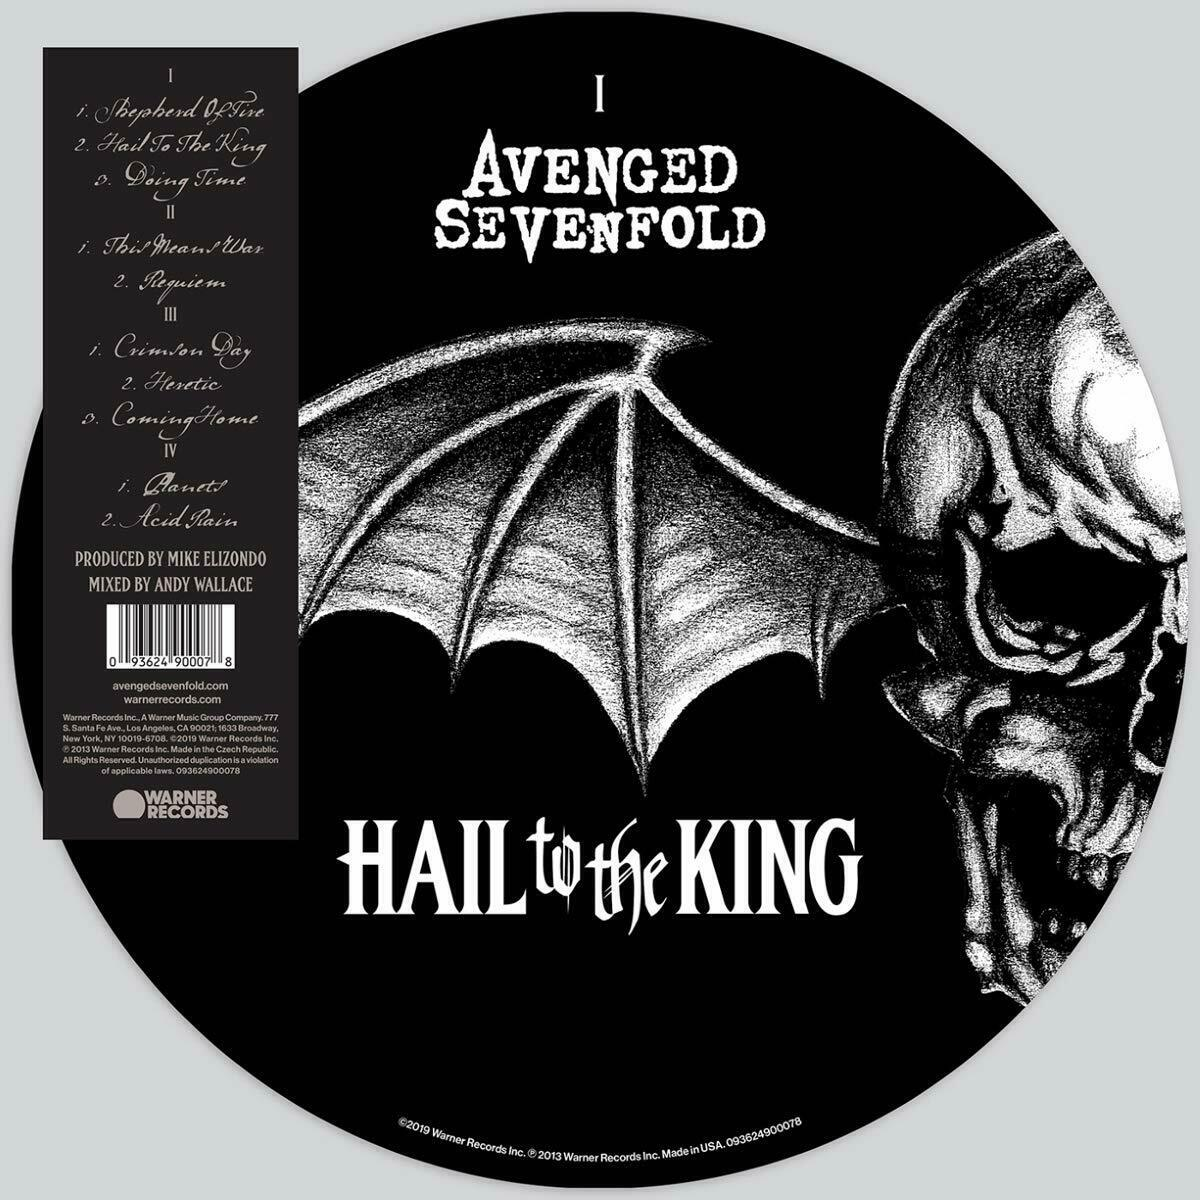 Avenged Sevenfold Hail To The King Picture Disc Double Vinyl Lp [Vinyl]